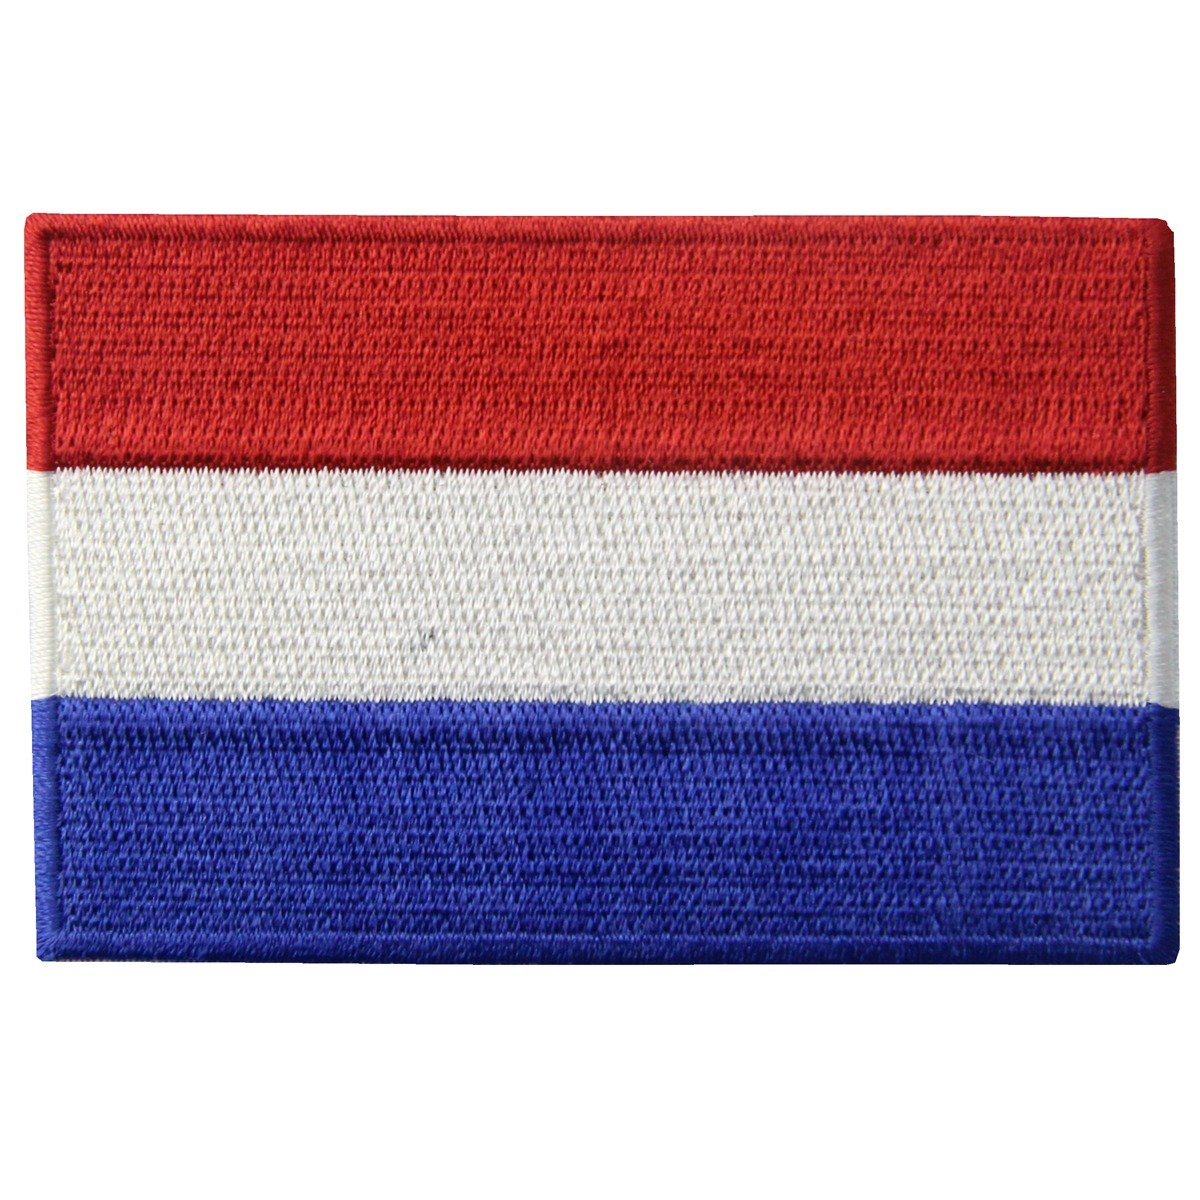 Holland Netherland Flag Embroidered Sew//Iron On Patch Patches